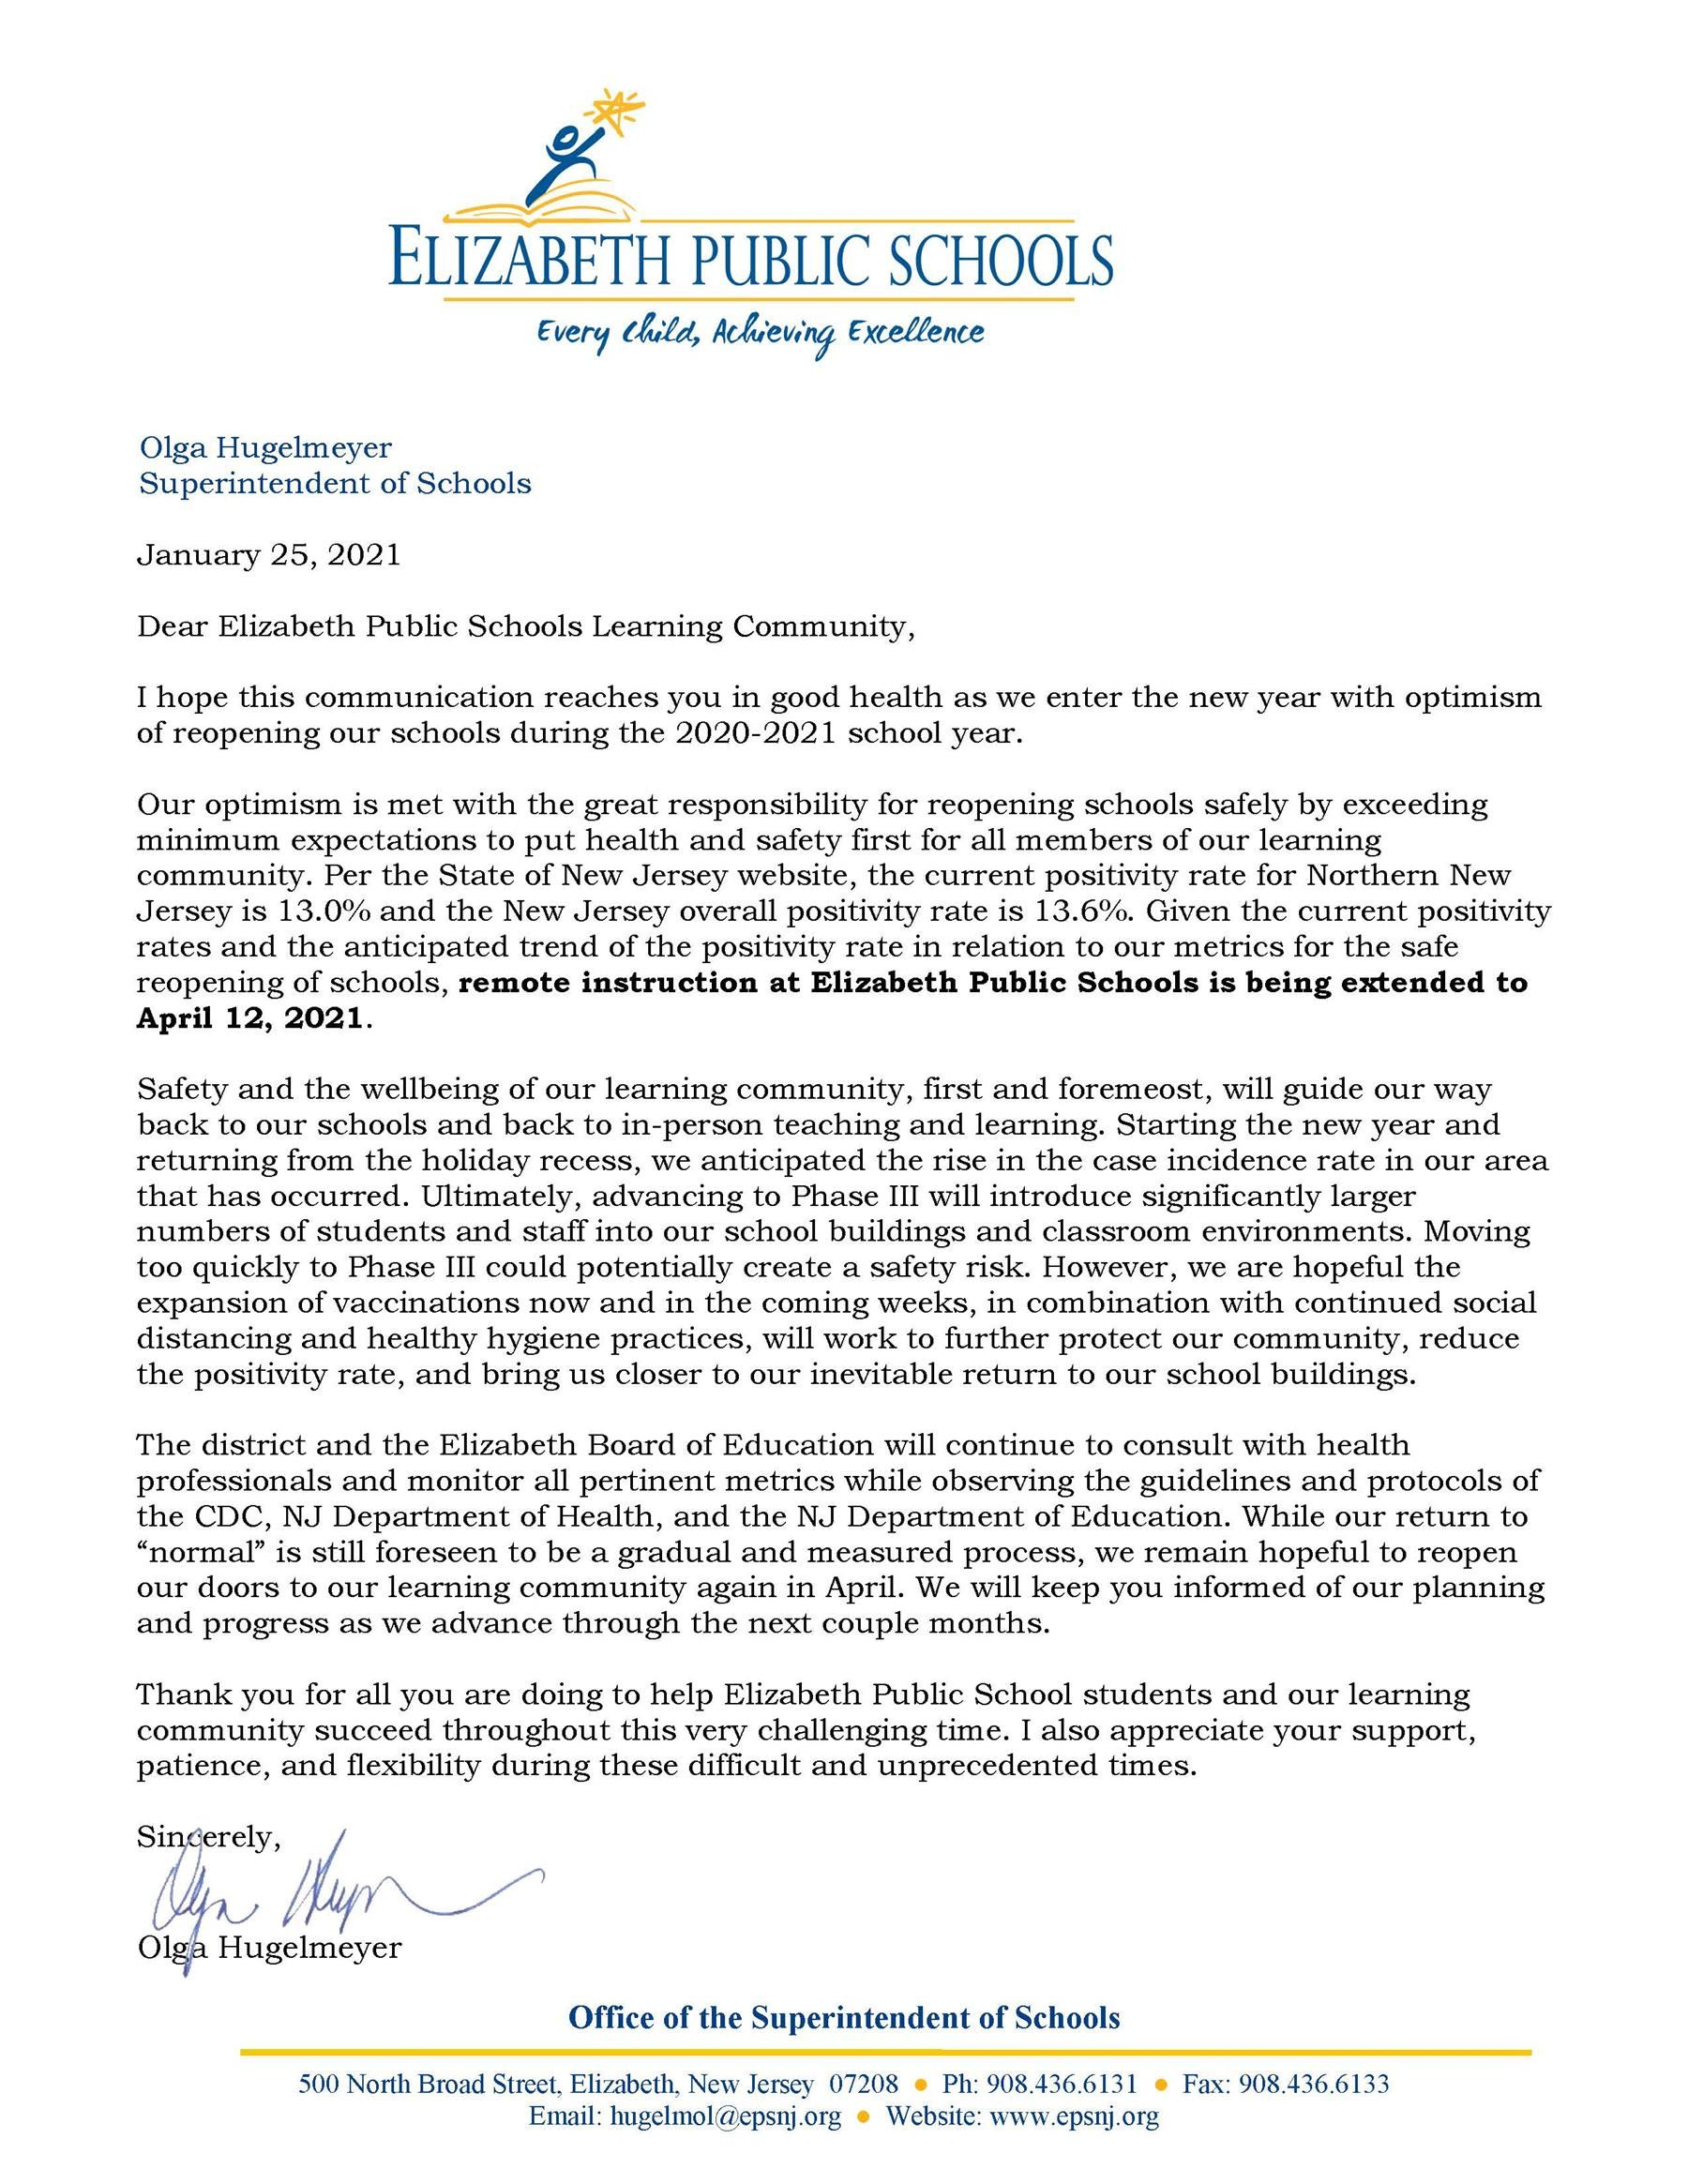 Letter to EPS Learning Community - 1-25-21- Extension of Remote Learning to April 2021